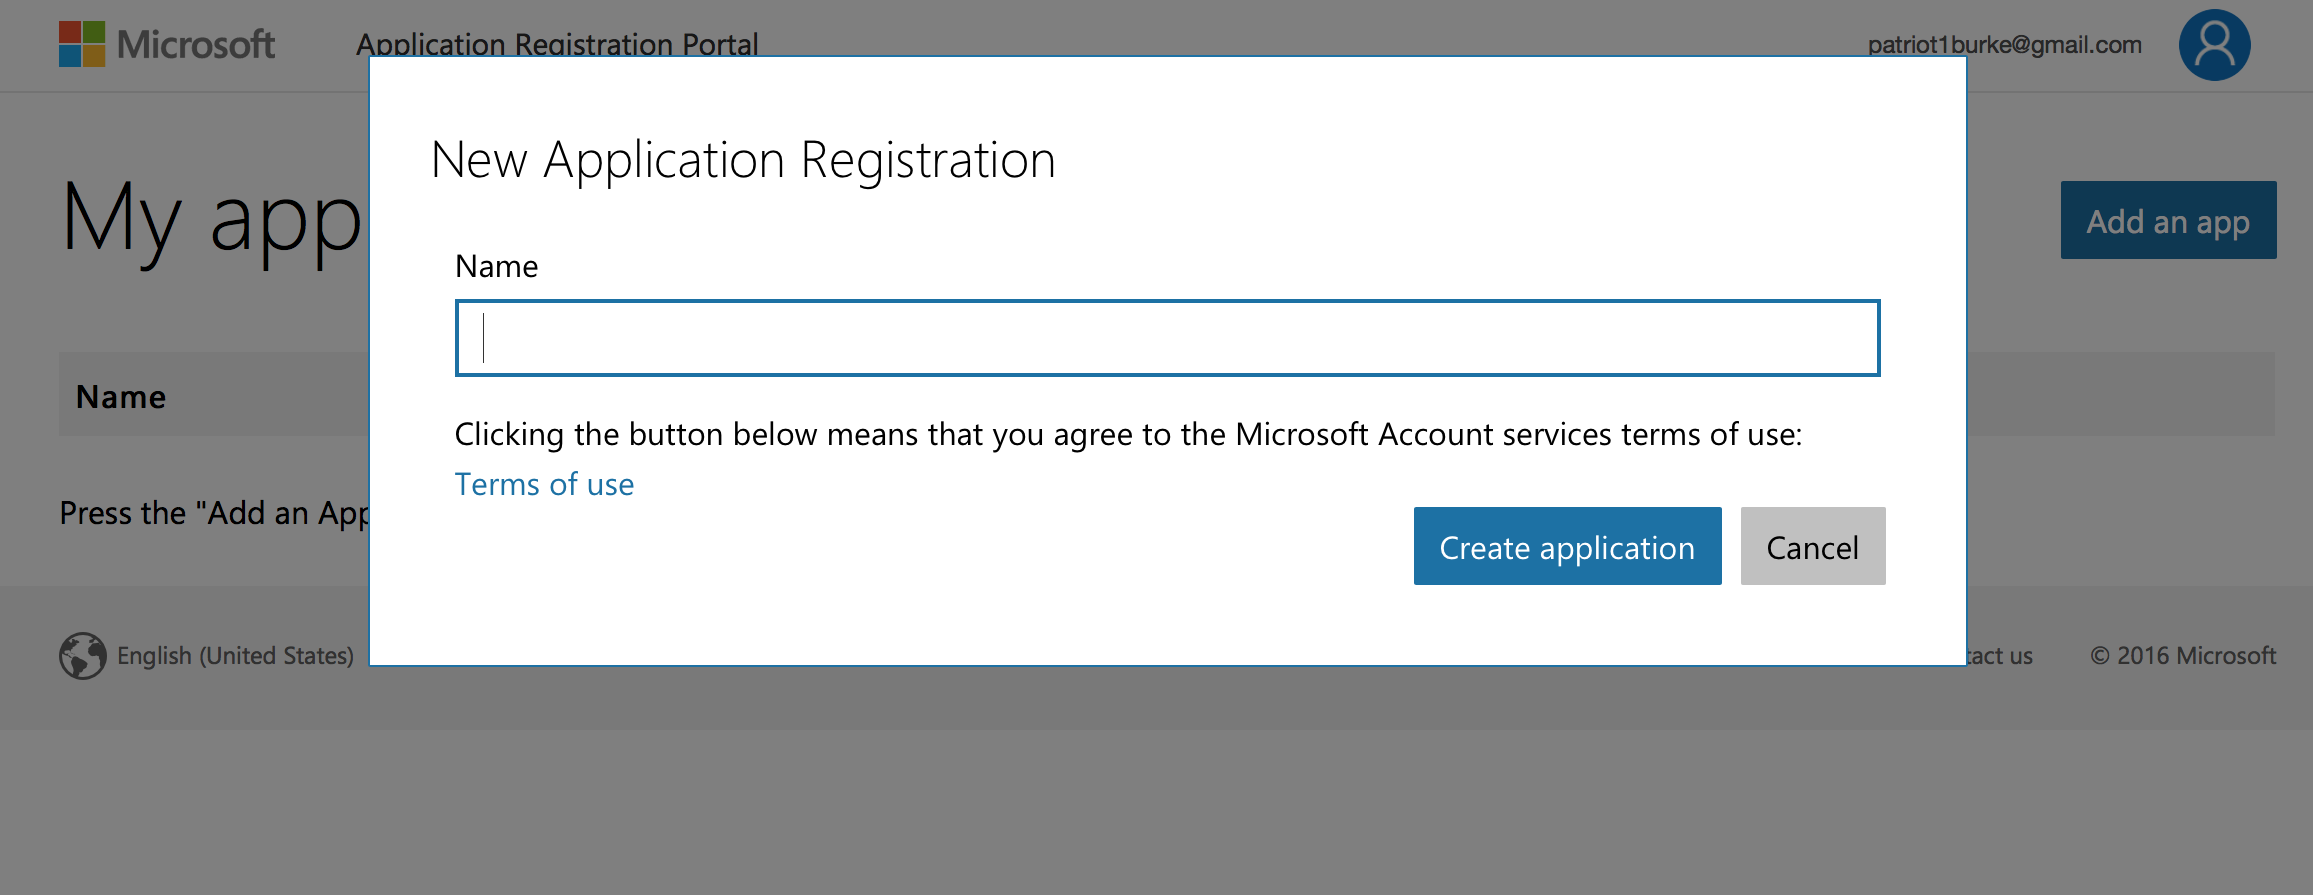 microsoft app register